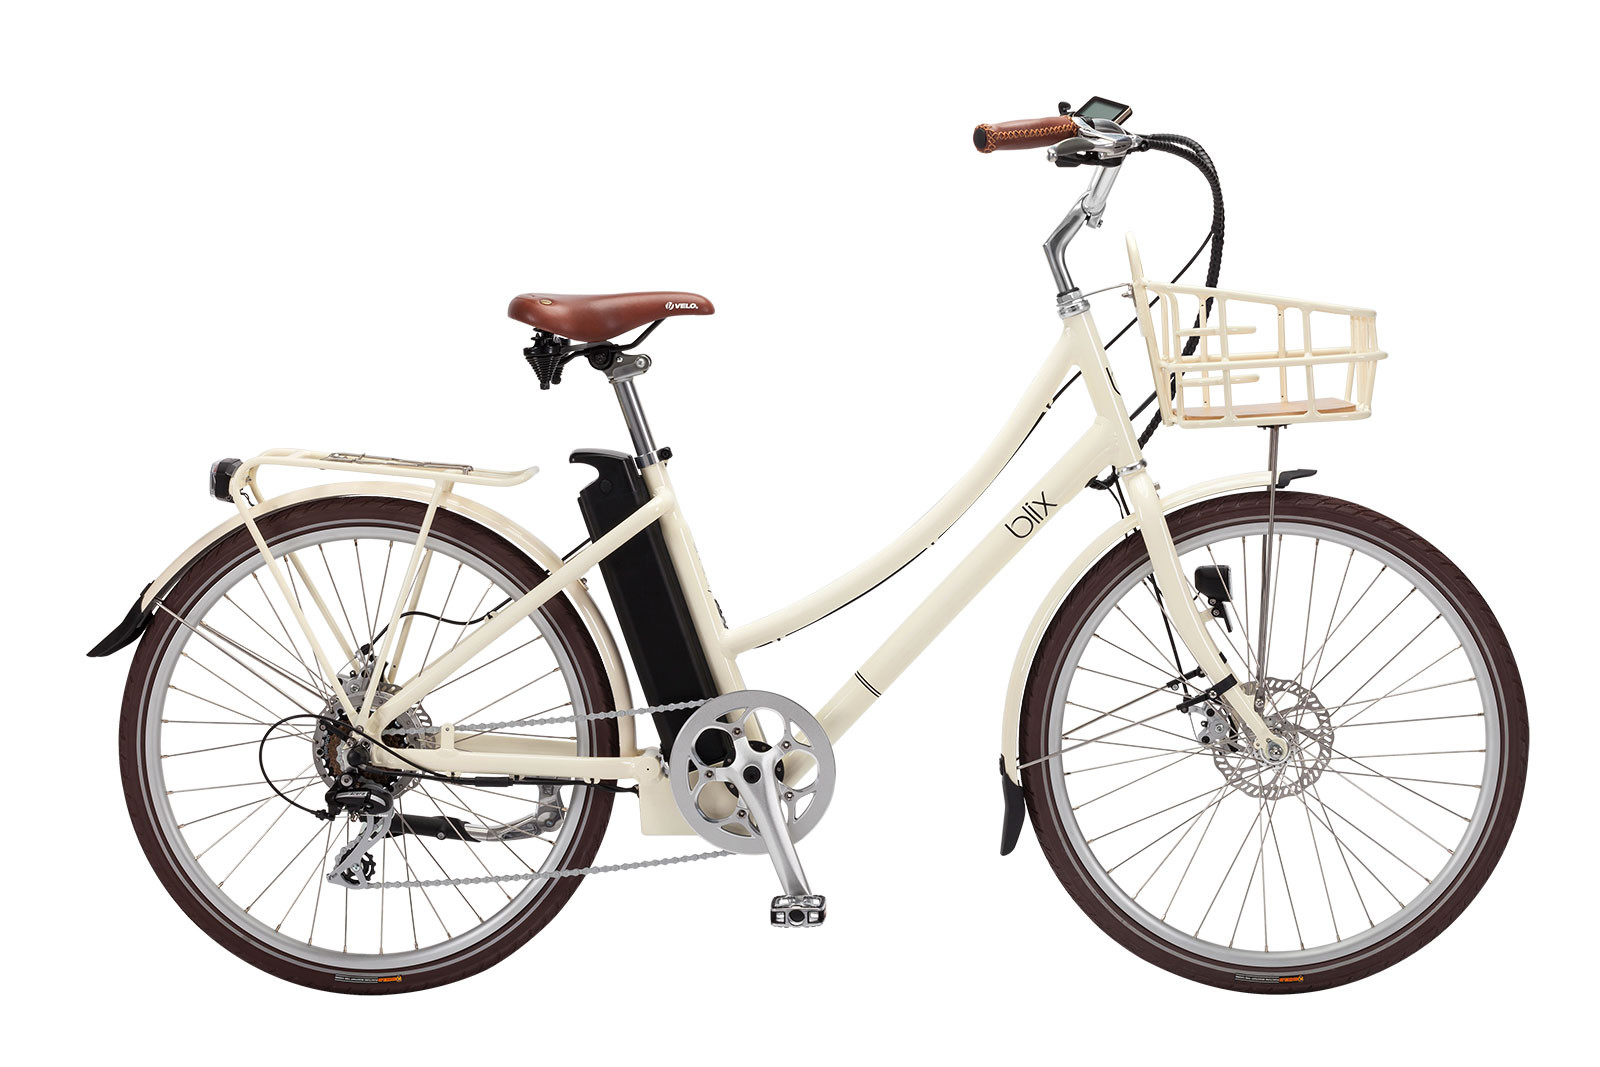 Best electric bikes: Aveny by blix side view